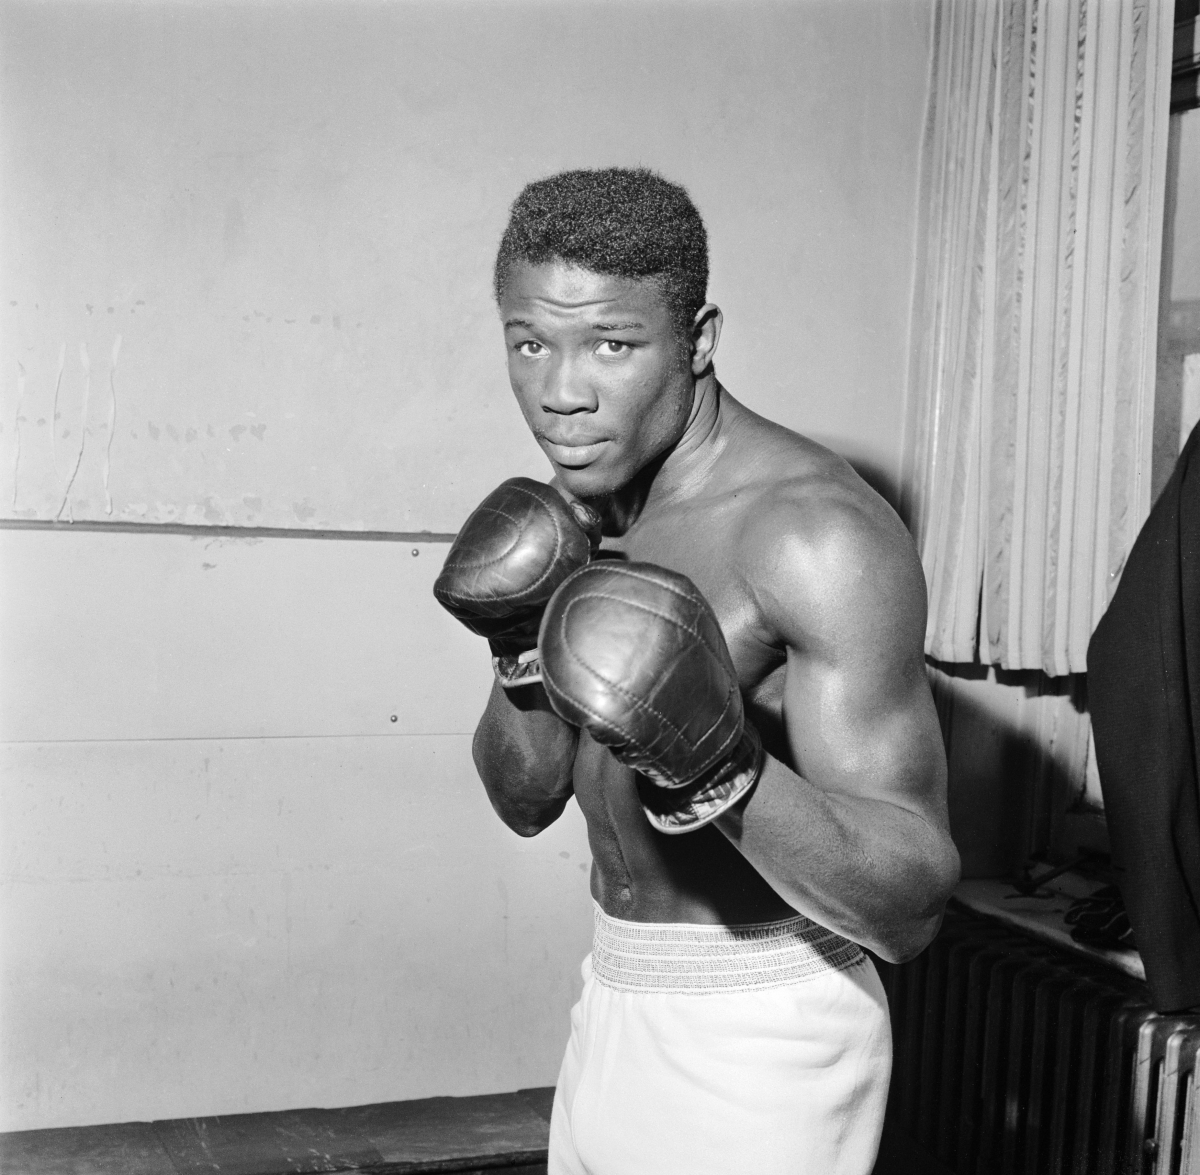 an analysis of who killed benny paret by norman cousins Bernardo benny the kid paret (march 14, 1937 – april 3, 1962) was a cuban welterweight boxer who won the world welterweight championship twice in the early 1960s.